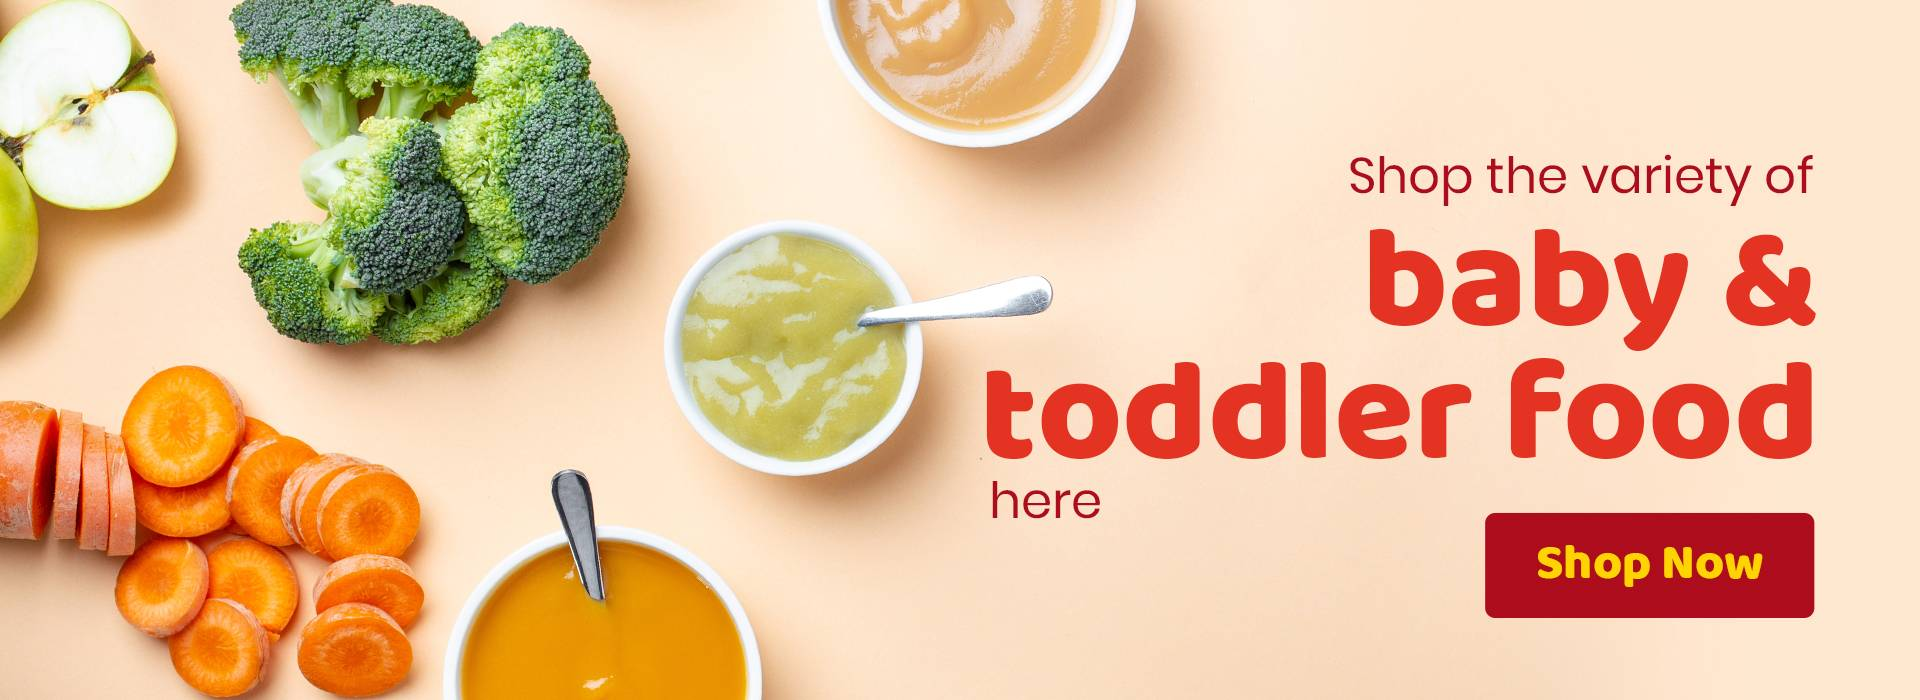 HOMEPAGE BANNER-BABY AND TODDLER FOOD